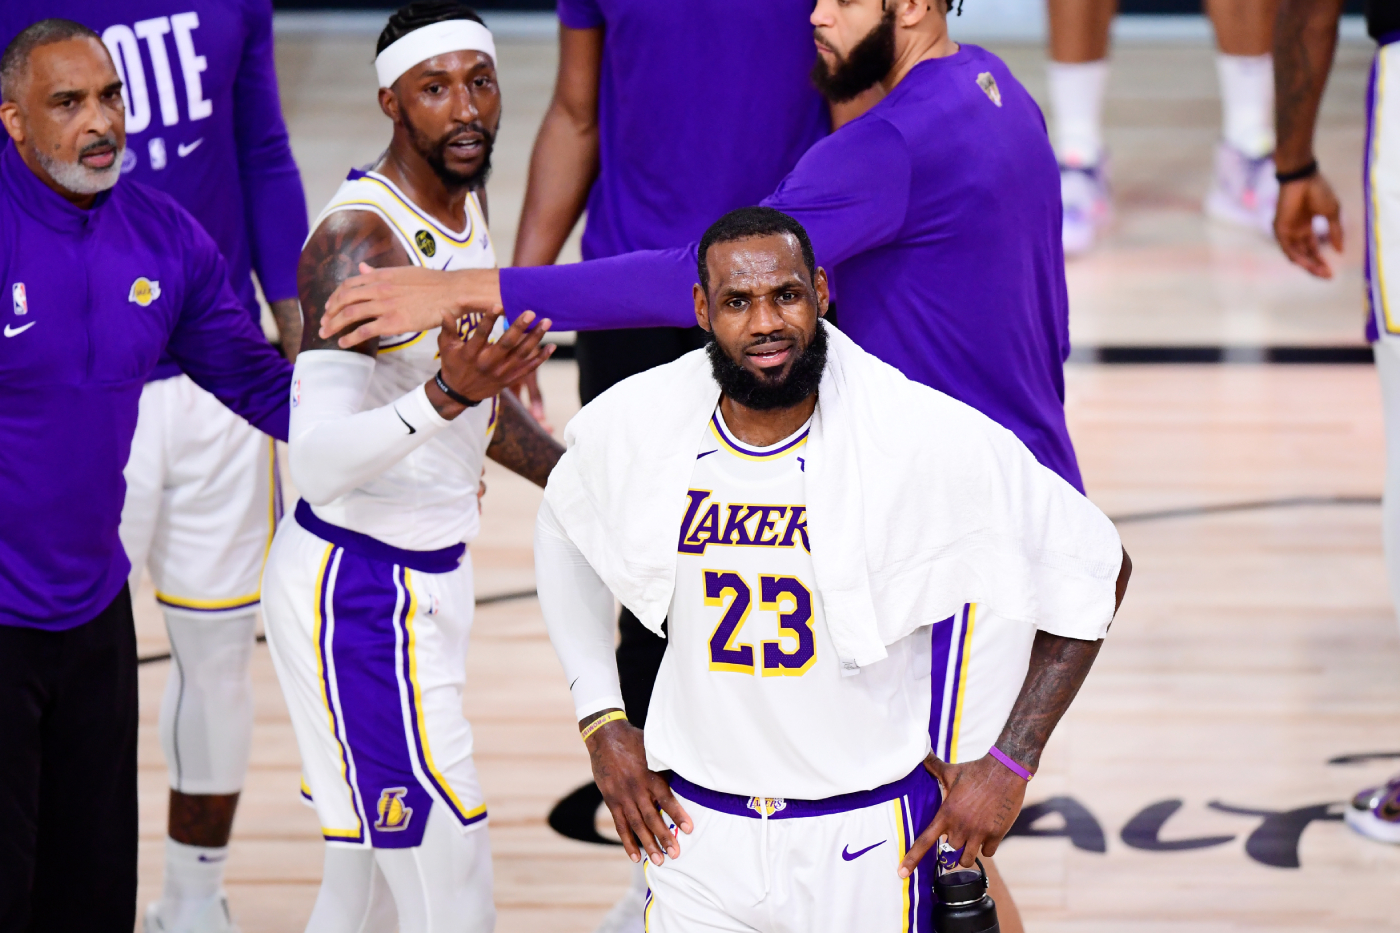 """LeBron James wasn't happy with a youth football coach recently. He even said he would have had """"more than words"""" with him if he were there."""